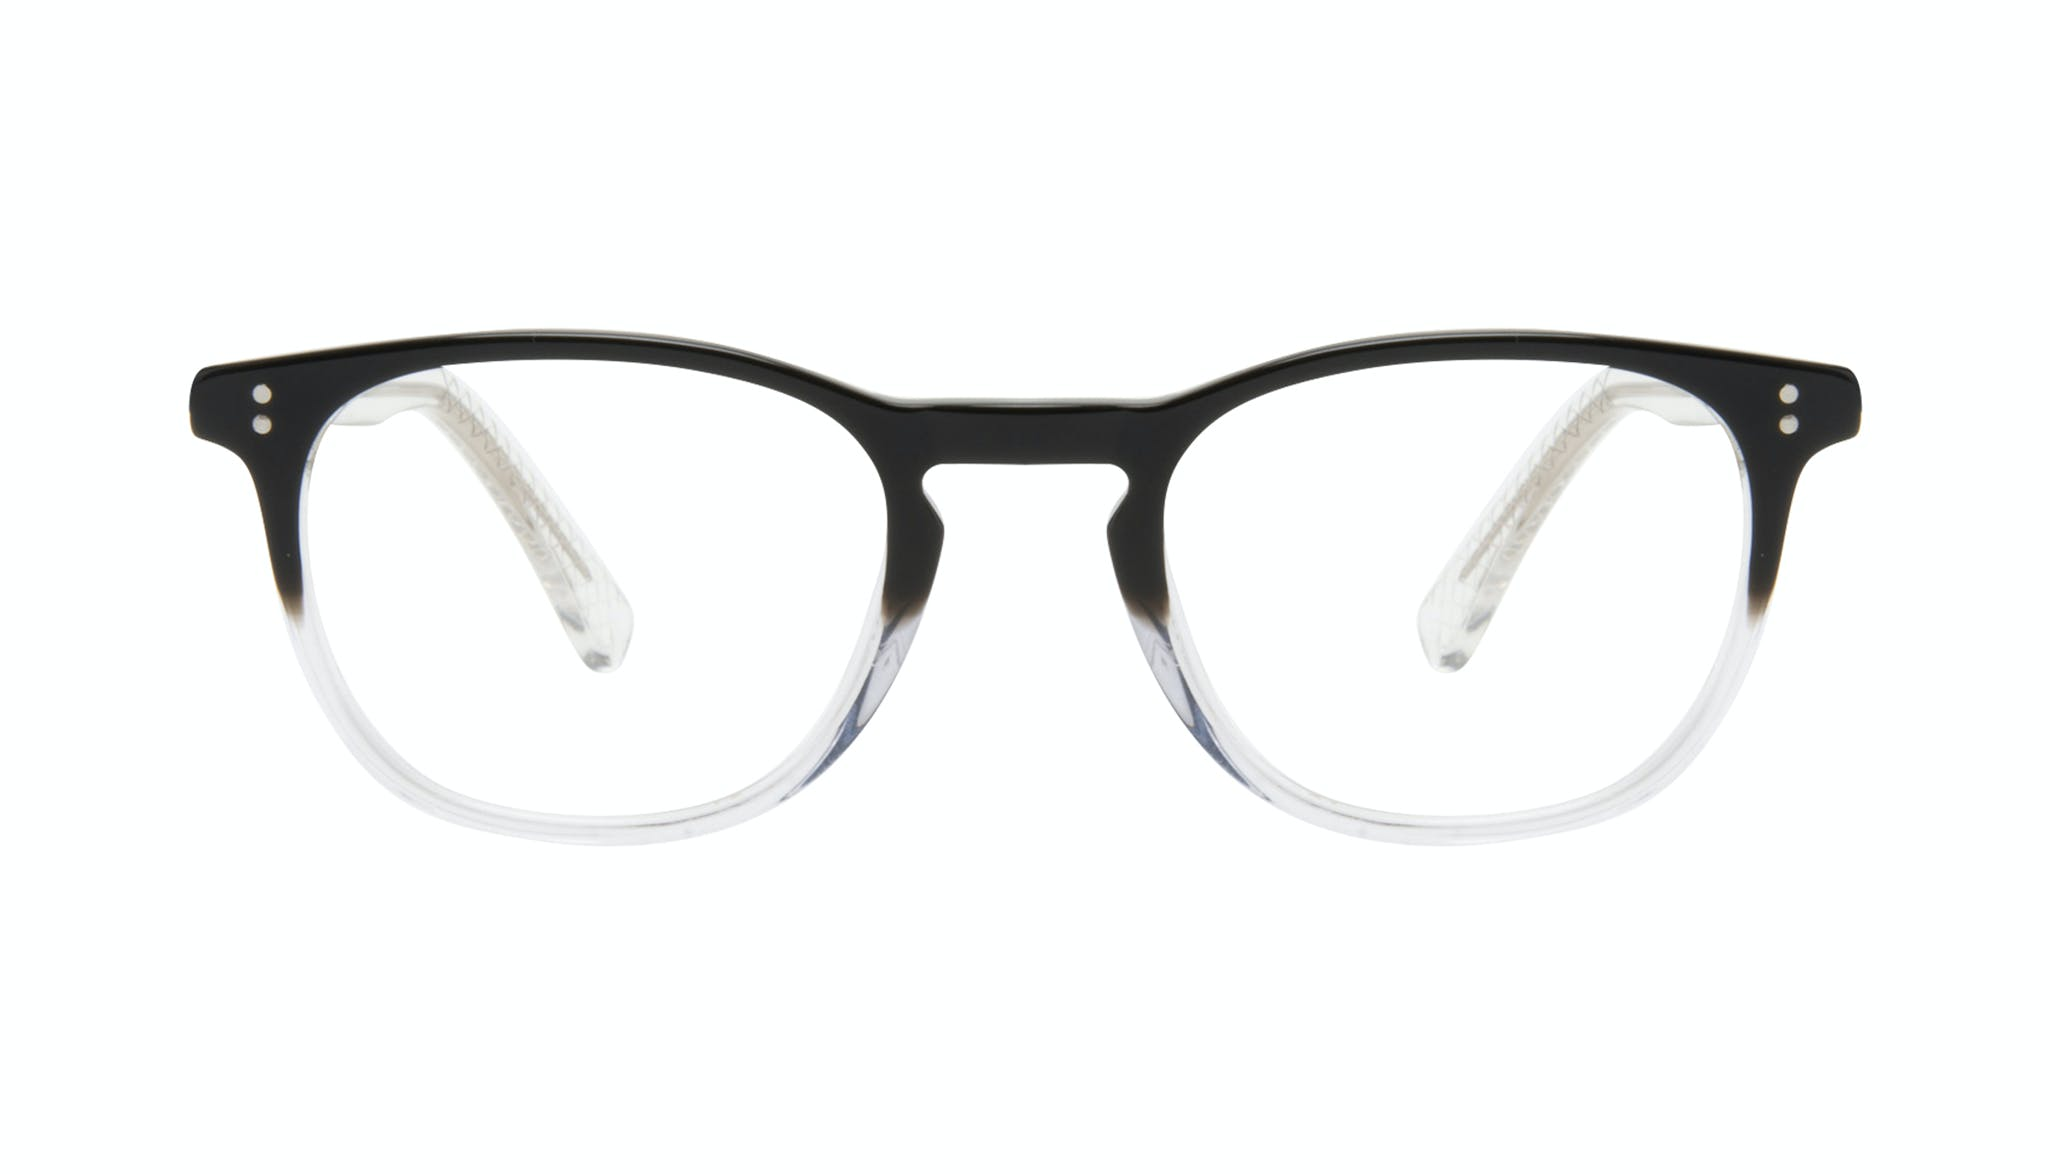 Affordable Fashion Glasses Round Eyeglasses Men Trooper Onyx Clear